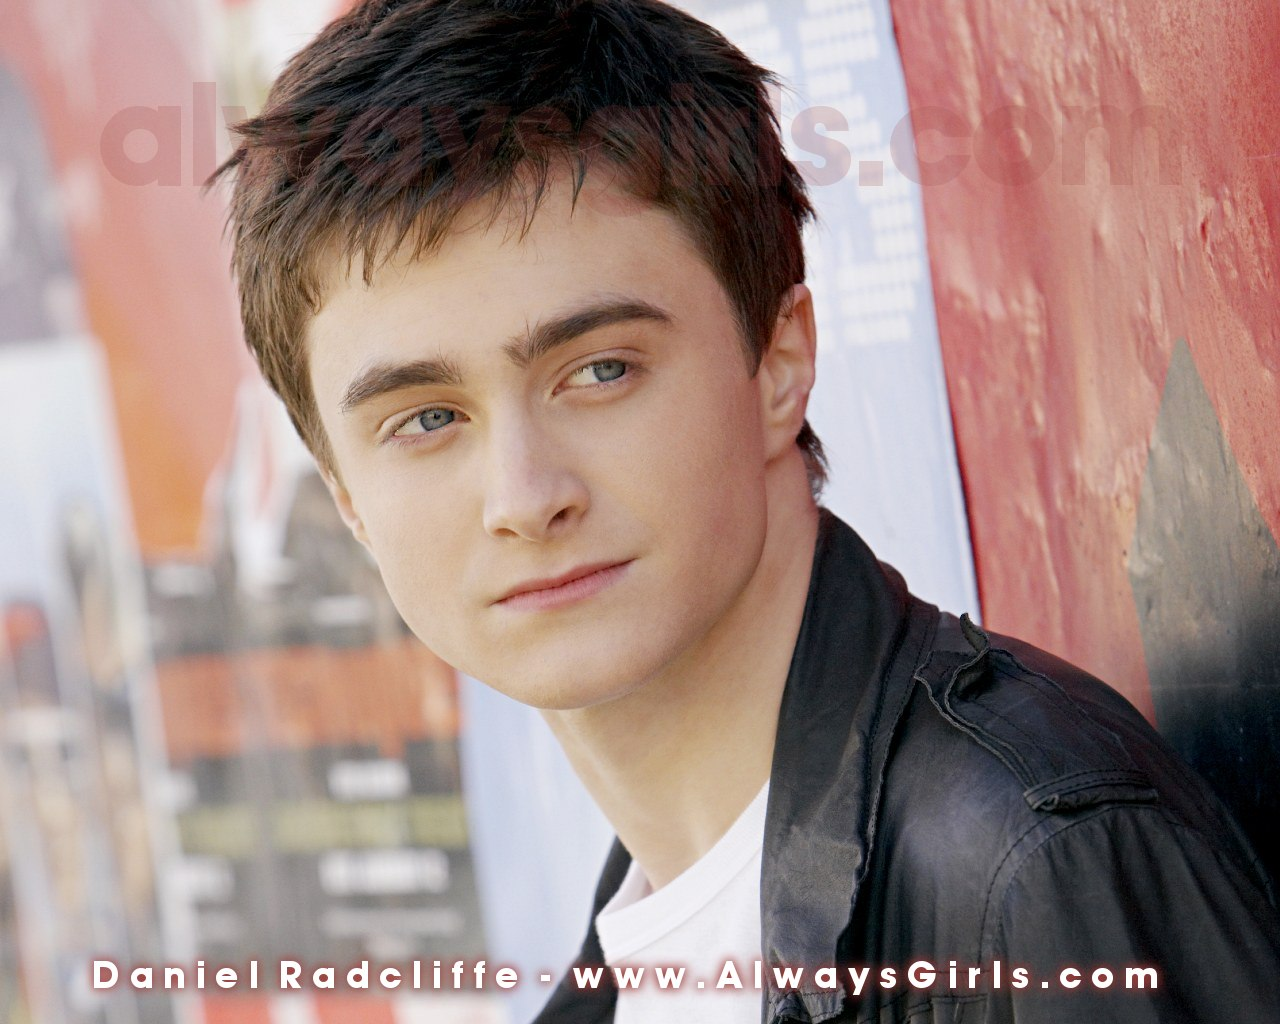 Daniel Radcliffe Images Daniel Radcliffe HD Wallpaper And